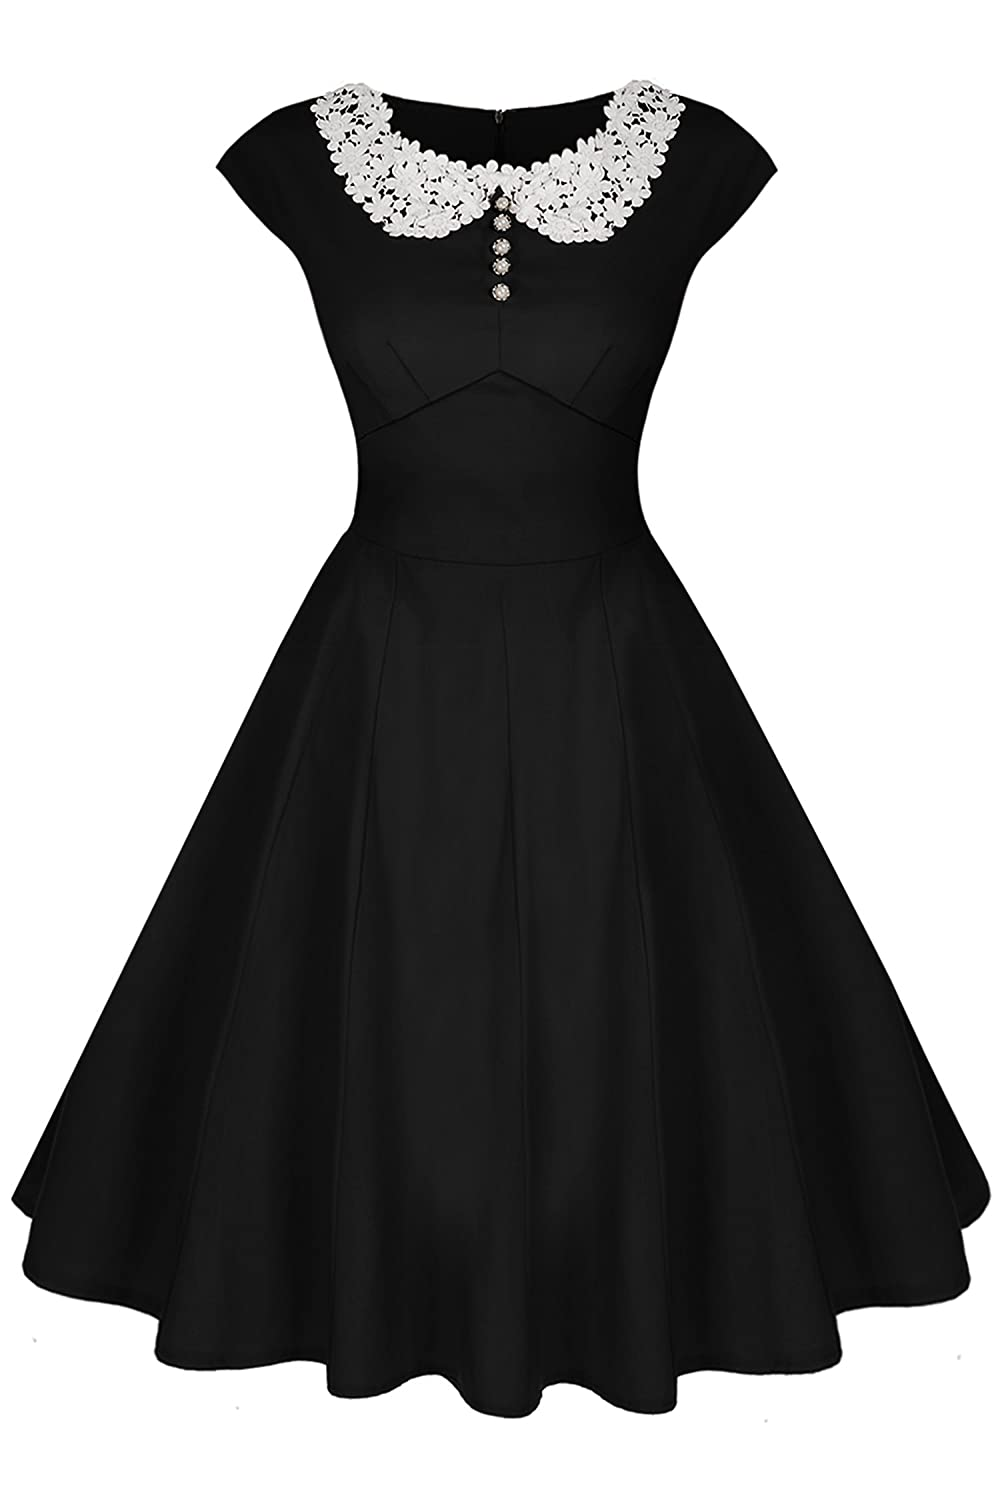 1950s Fashion History: Women's Clothing Audrey Hepburn Style 1940s Rockabilly Evening Dress  AT vintagedancer.com